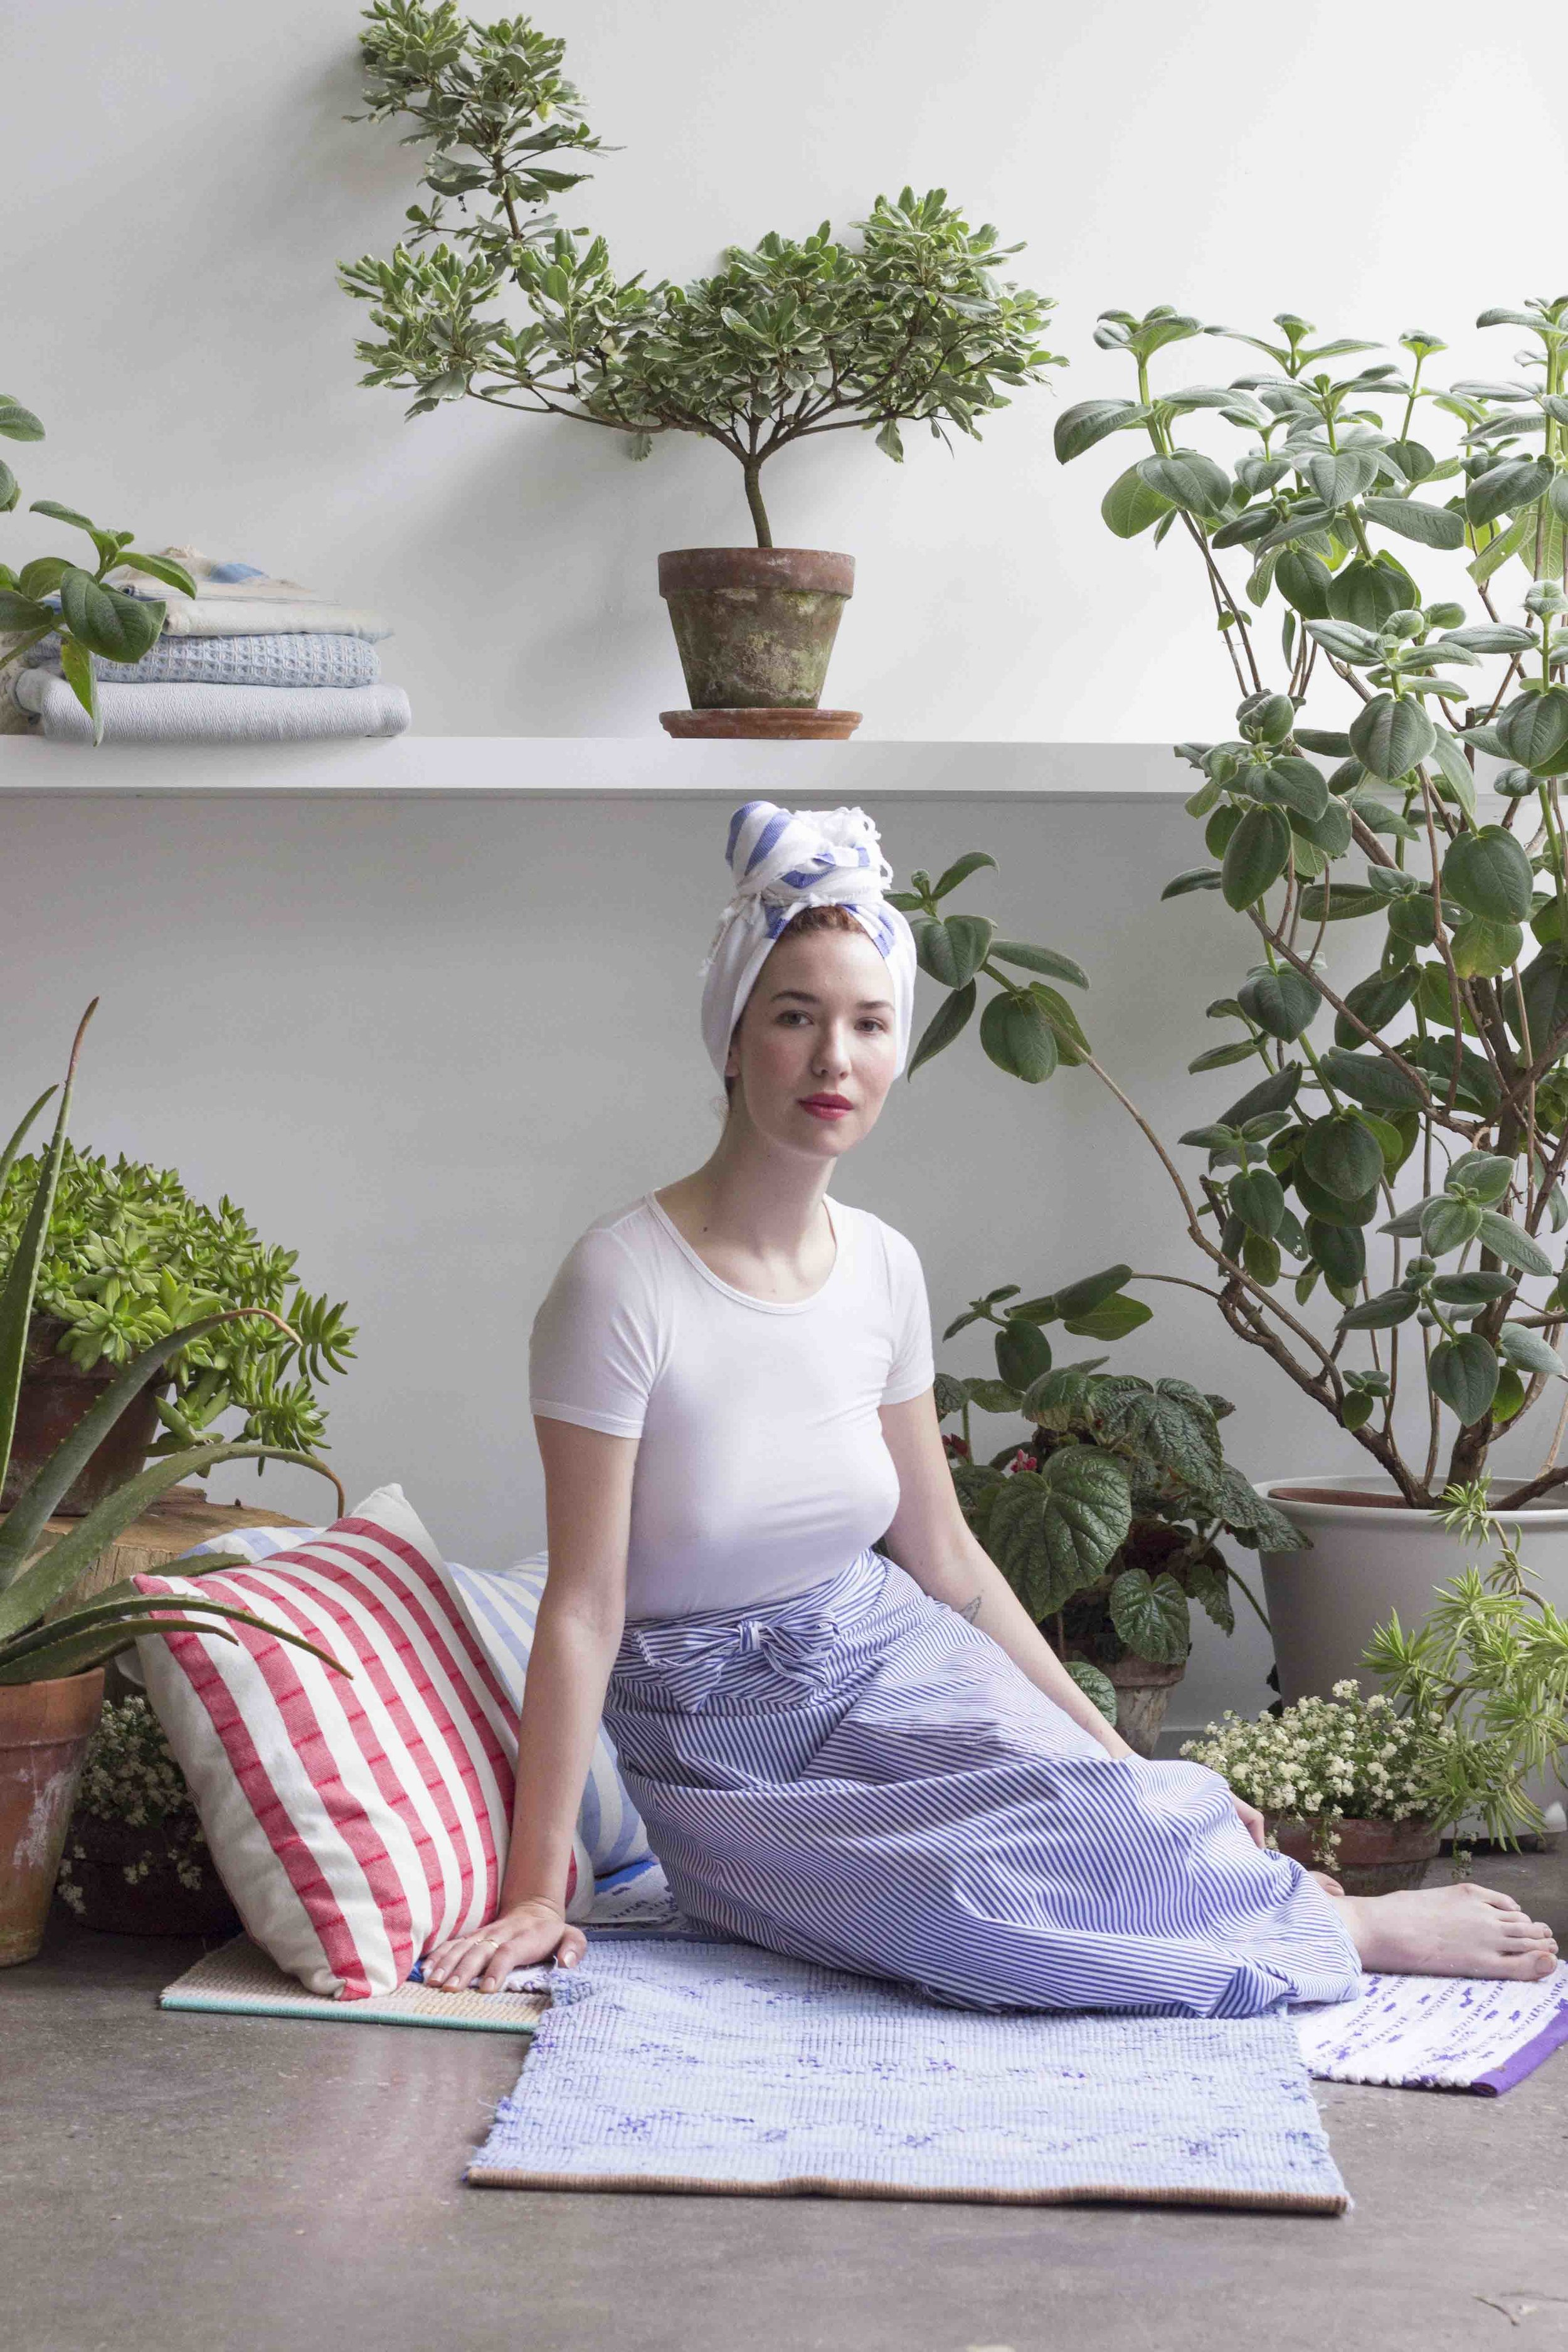 Hair Towel - Hamilton Peskir, Rugs by Claudia Mills, Blue Stripped Skirt and white Top by Wayward Collection